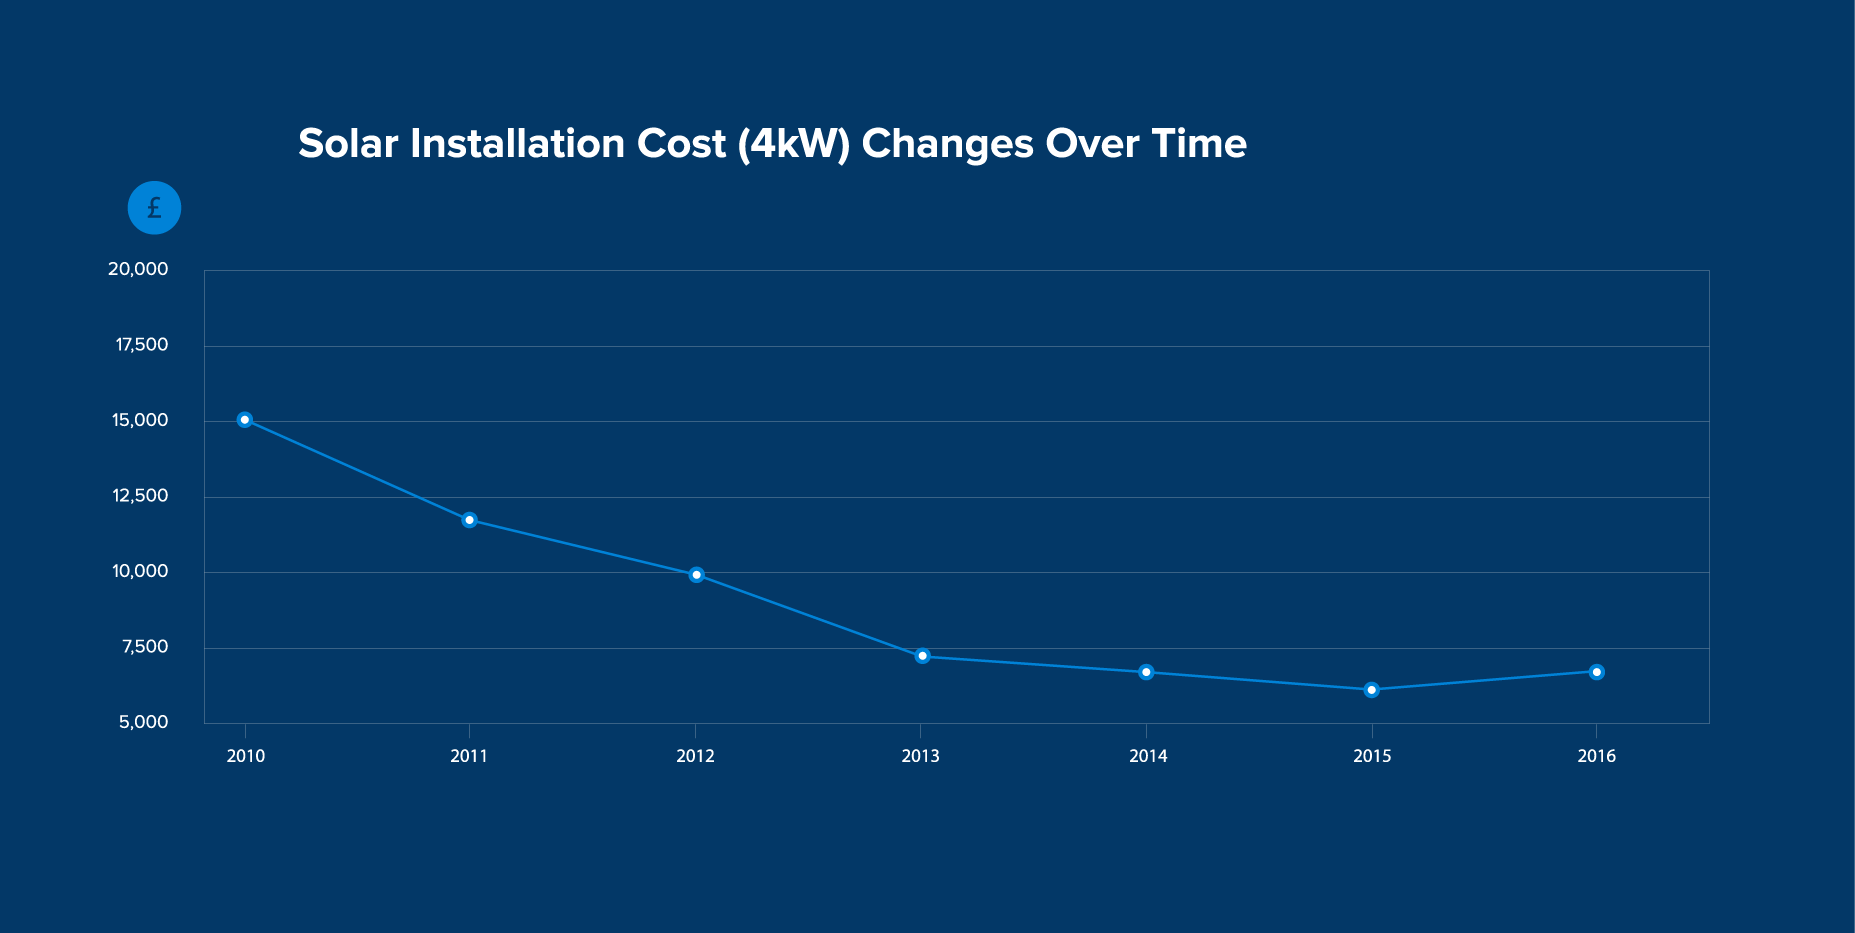 UK Solar installation costs (4kW) from 2010-2016. Credit: Expertsure.com/UK